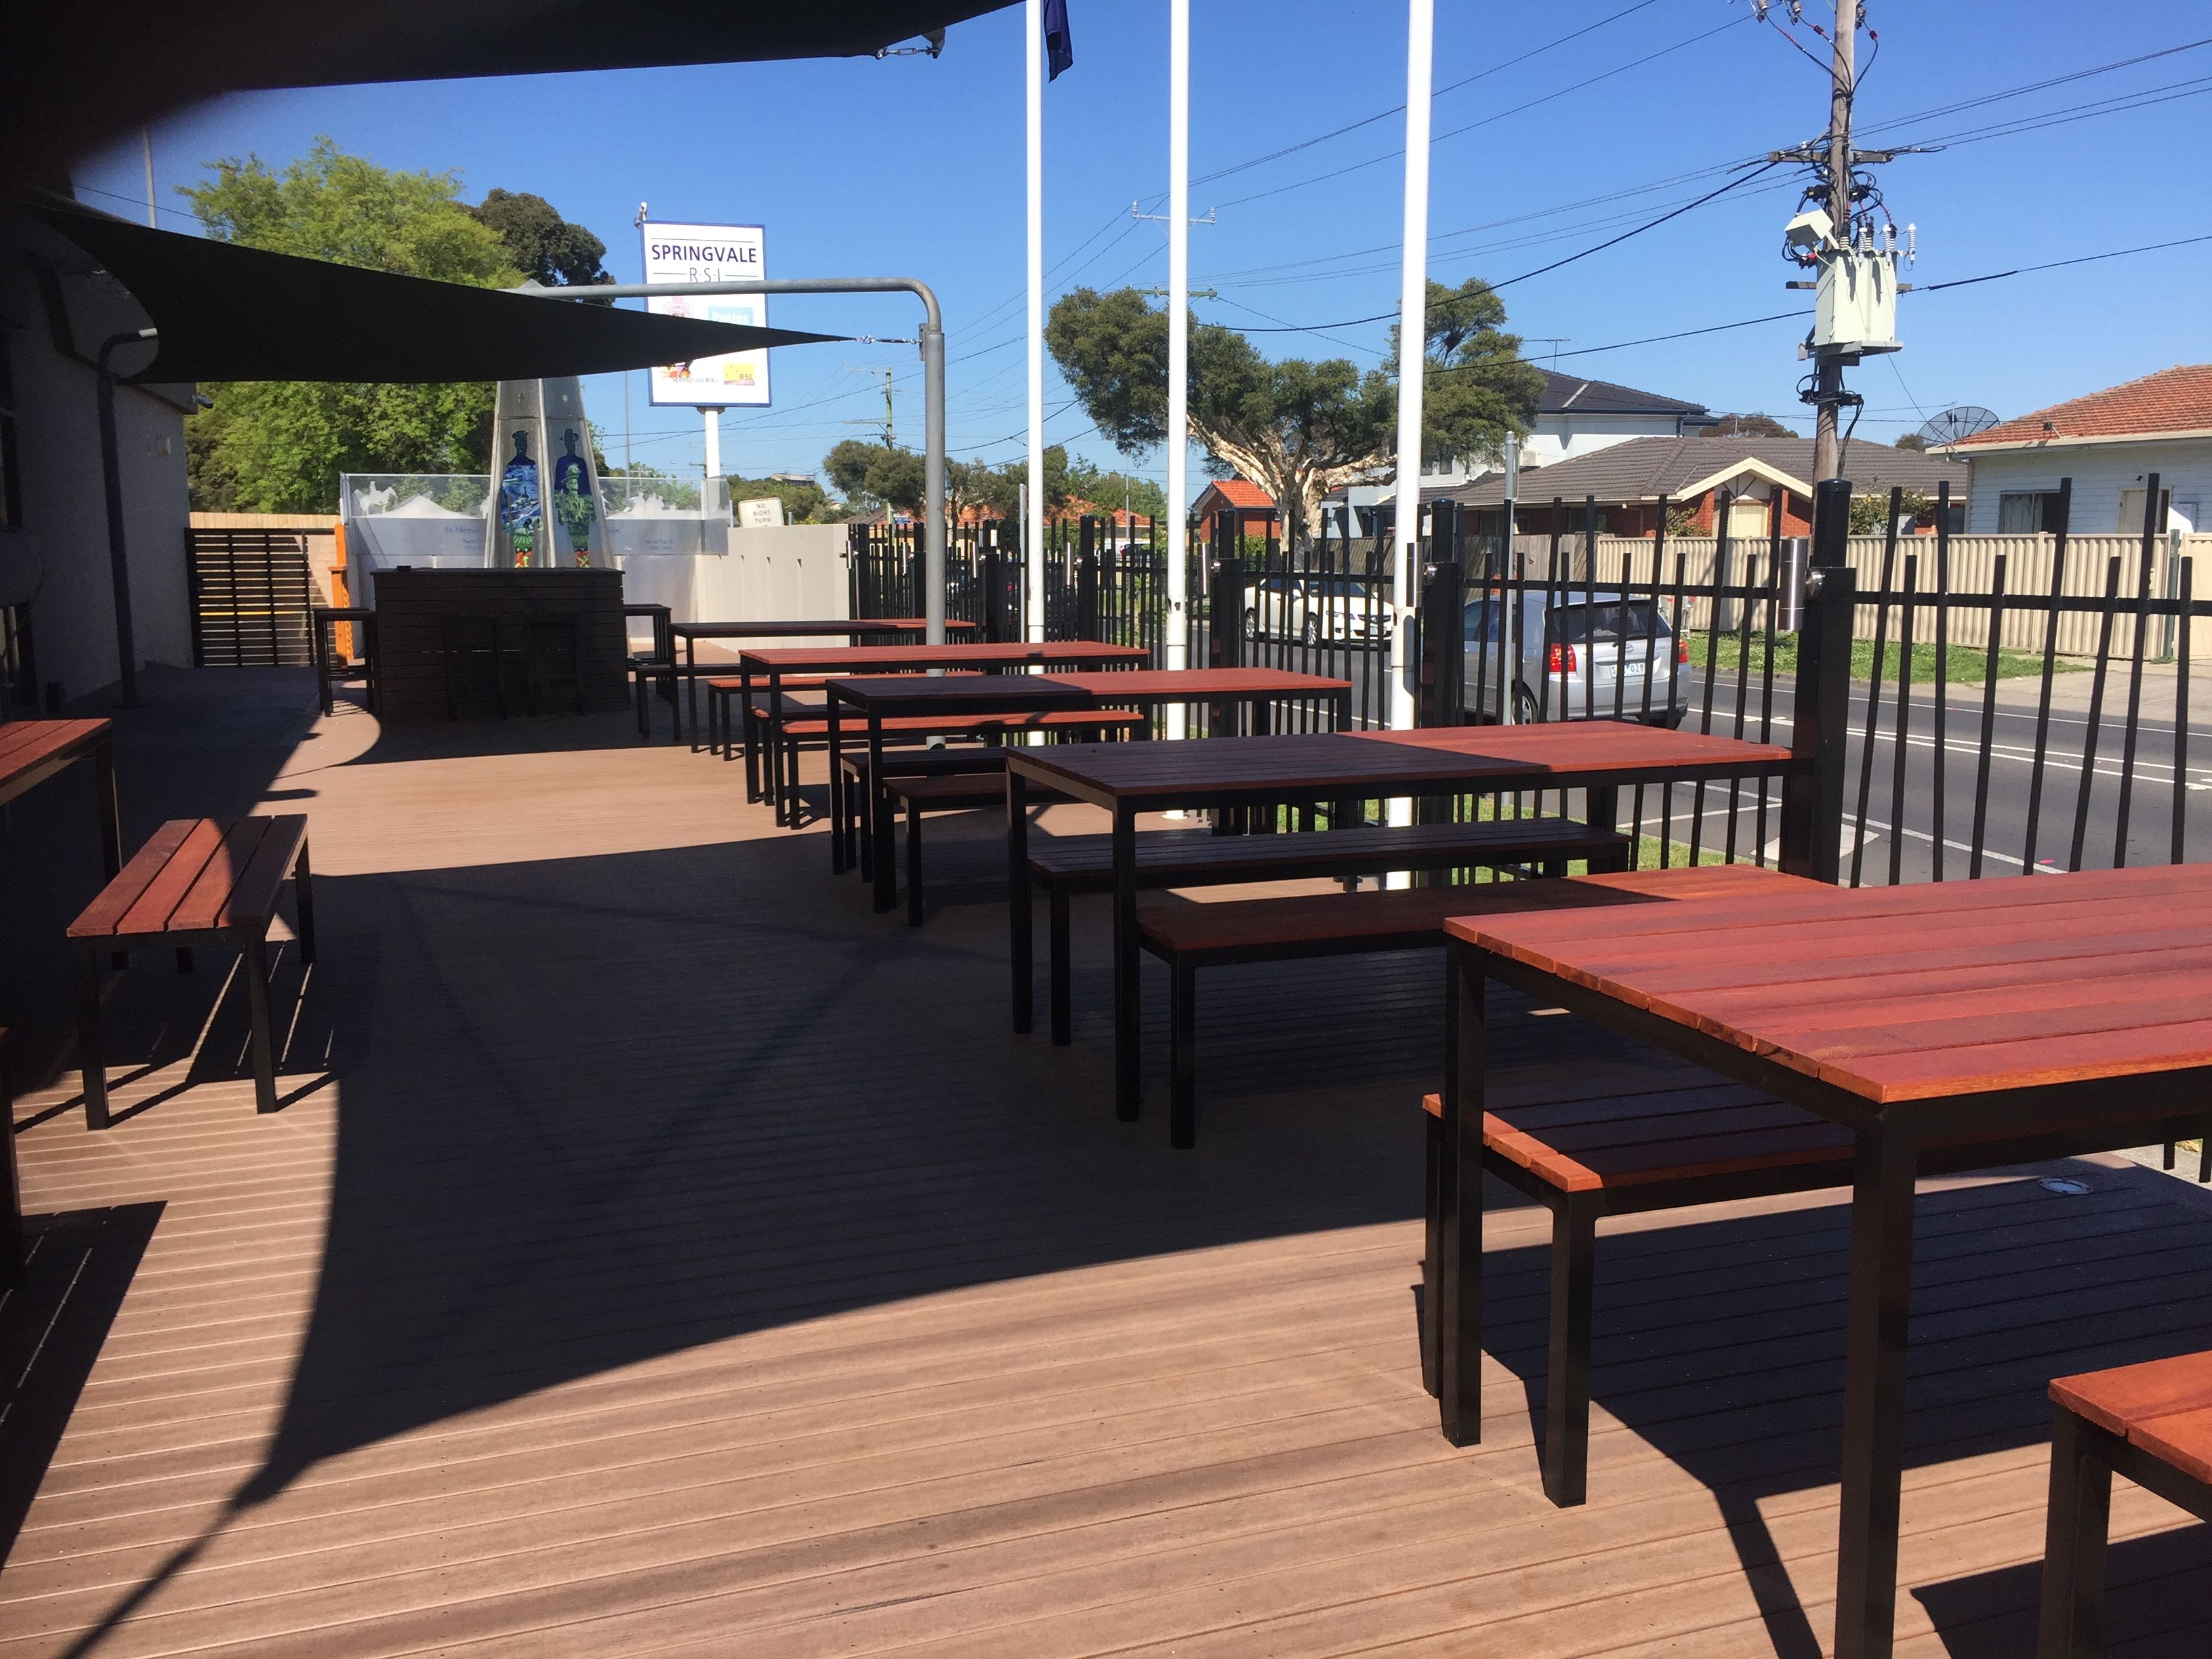 Commercial Outdoor Furniture Melbourne For Cafes Bars